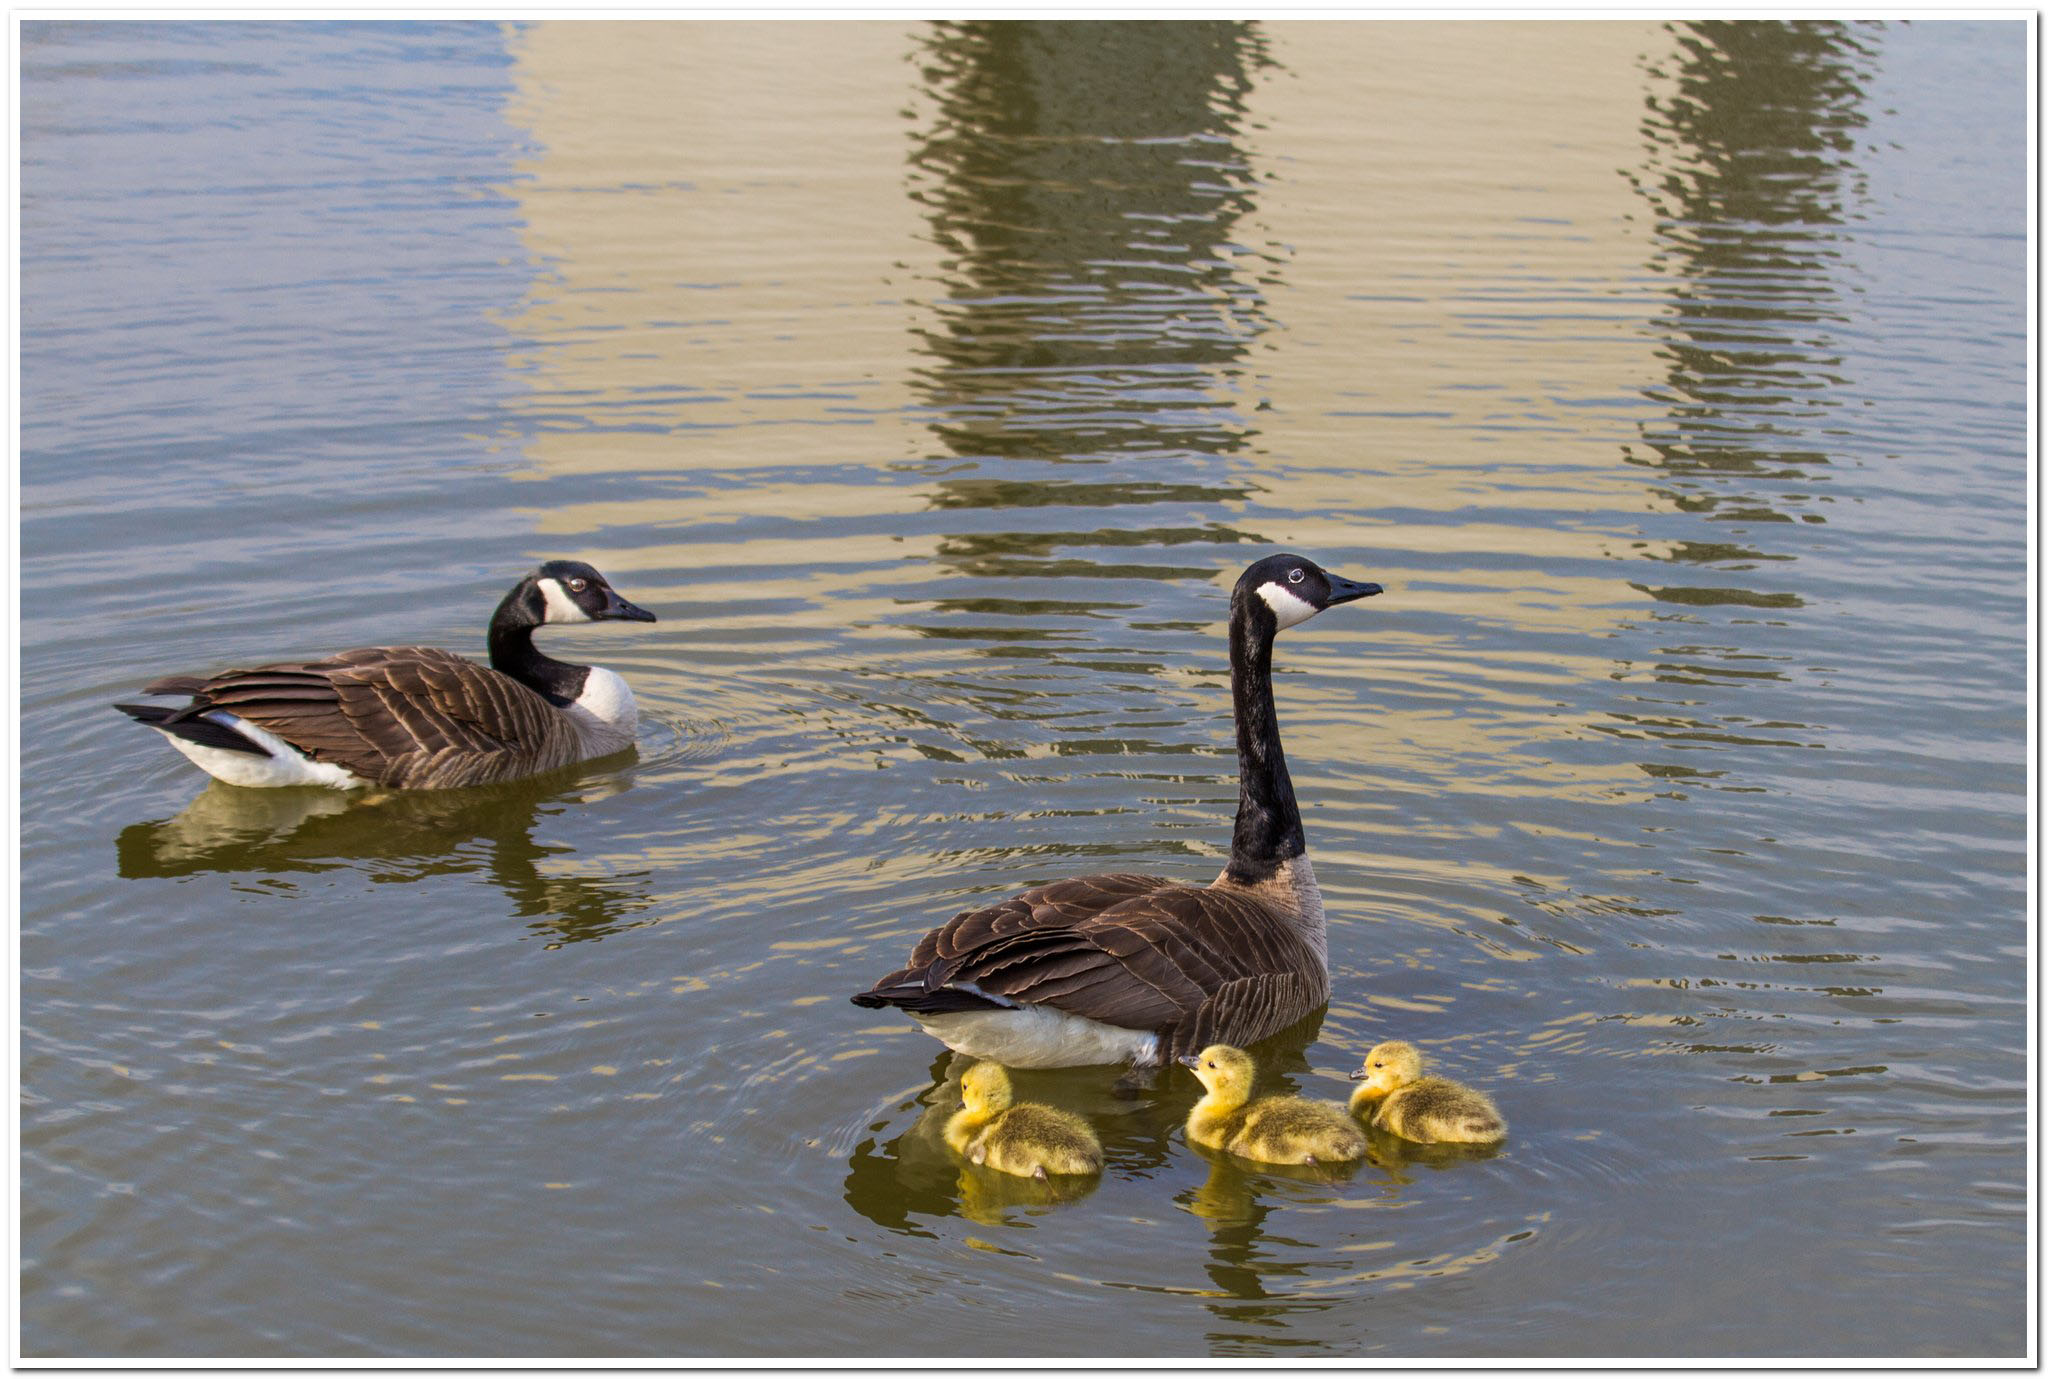 Mother goose and young create ripples in Wilson Hall's reflection. Photo: Elliott McCrory, AD